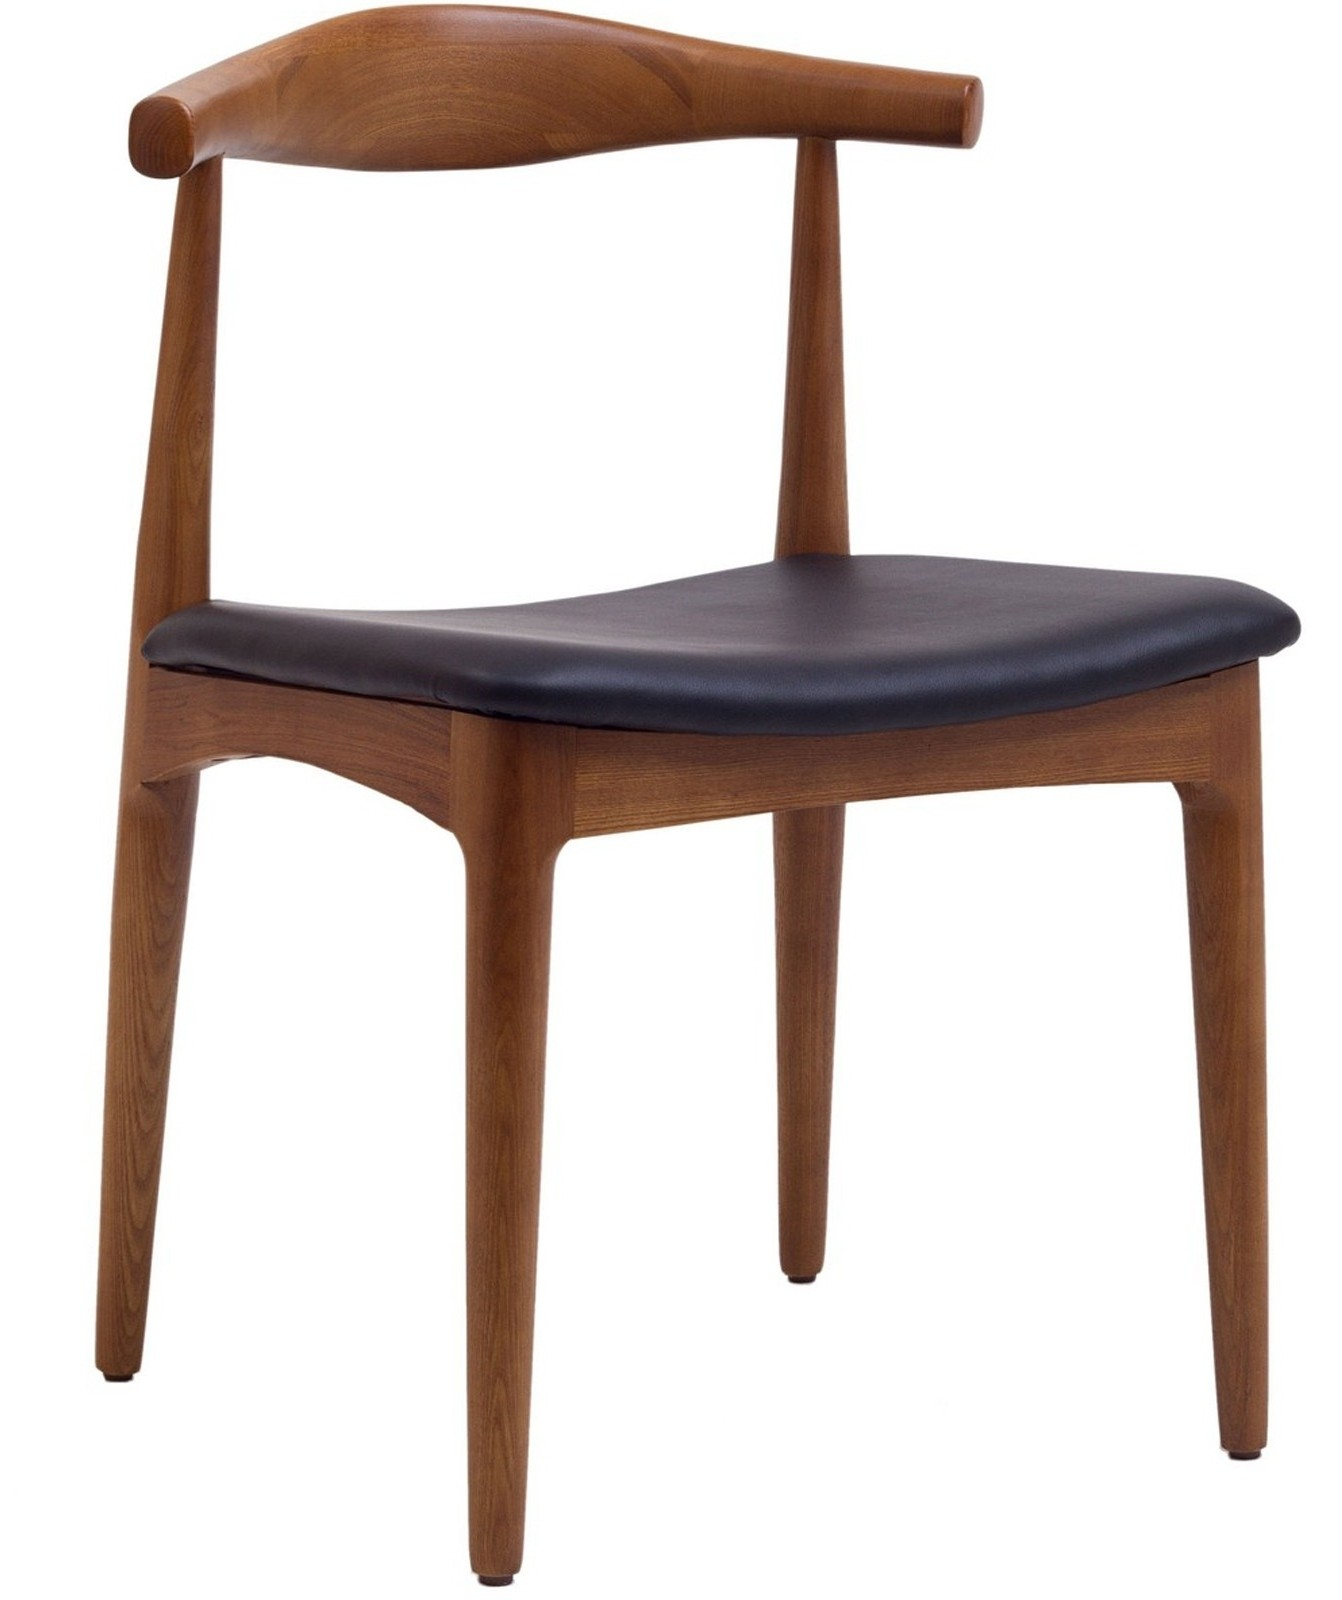 Tracy wood dining chair with faux leather seat from for Wood and leather dining chair